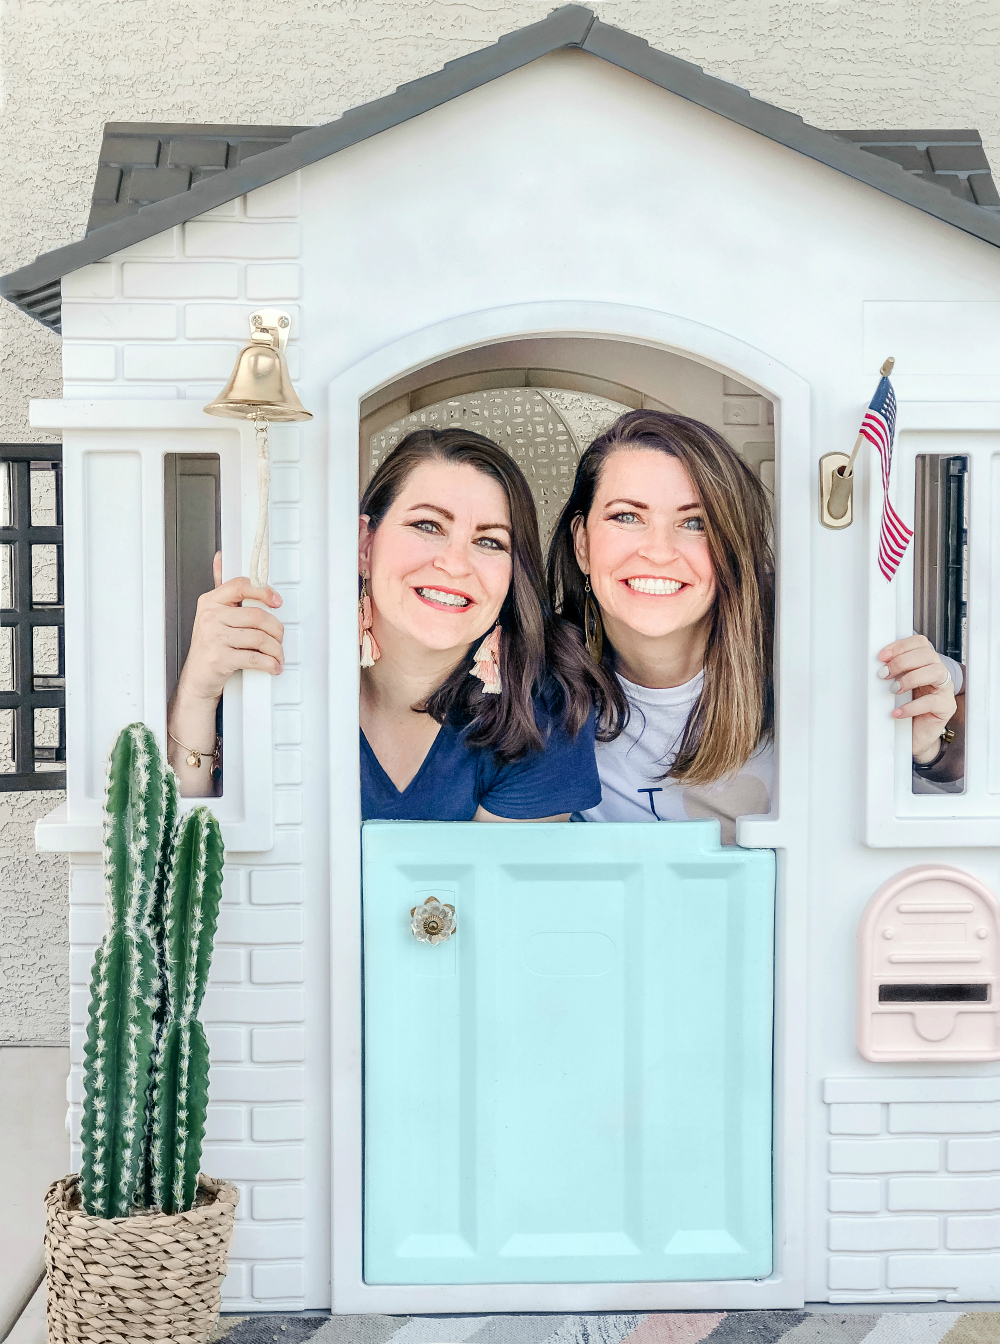 Twin sister DIYers LollyJane.com Kristi + Kelli transformed this plastic playhouse in no time at all-- click to see the before and how-to! Amazing! #diy #playhousemakeover